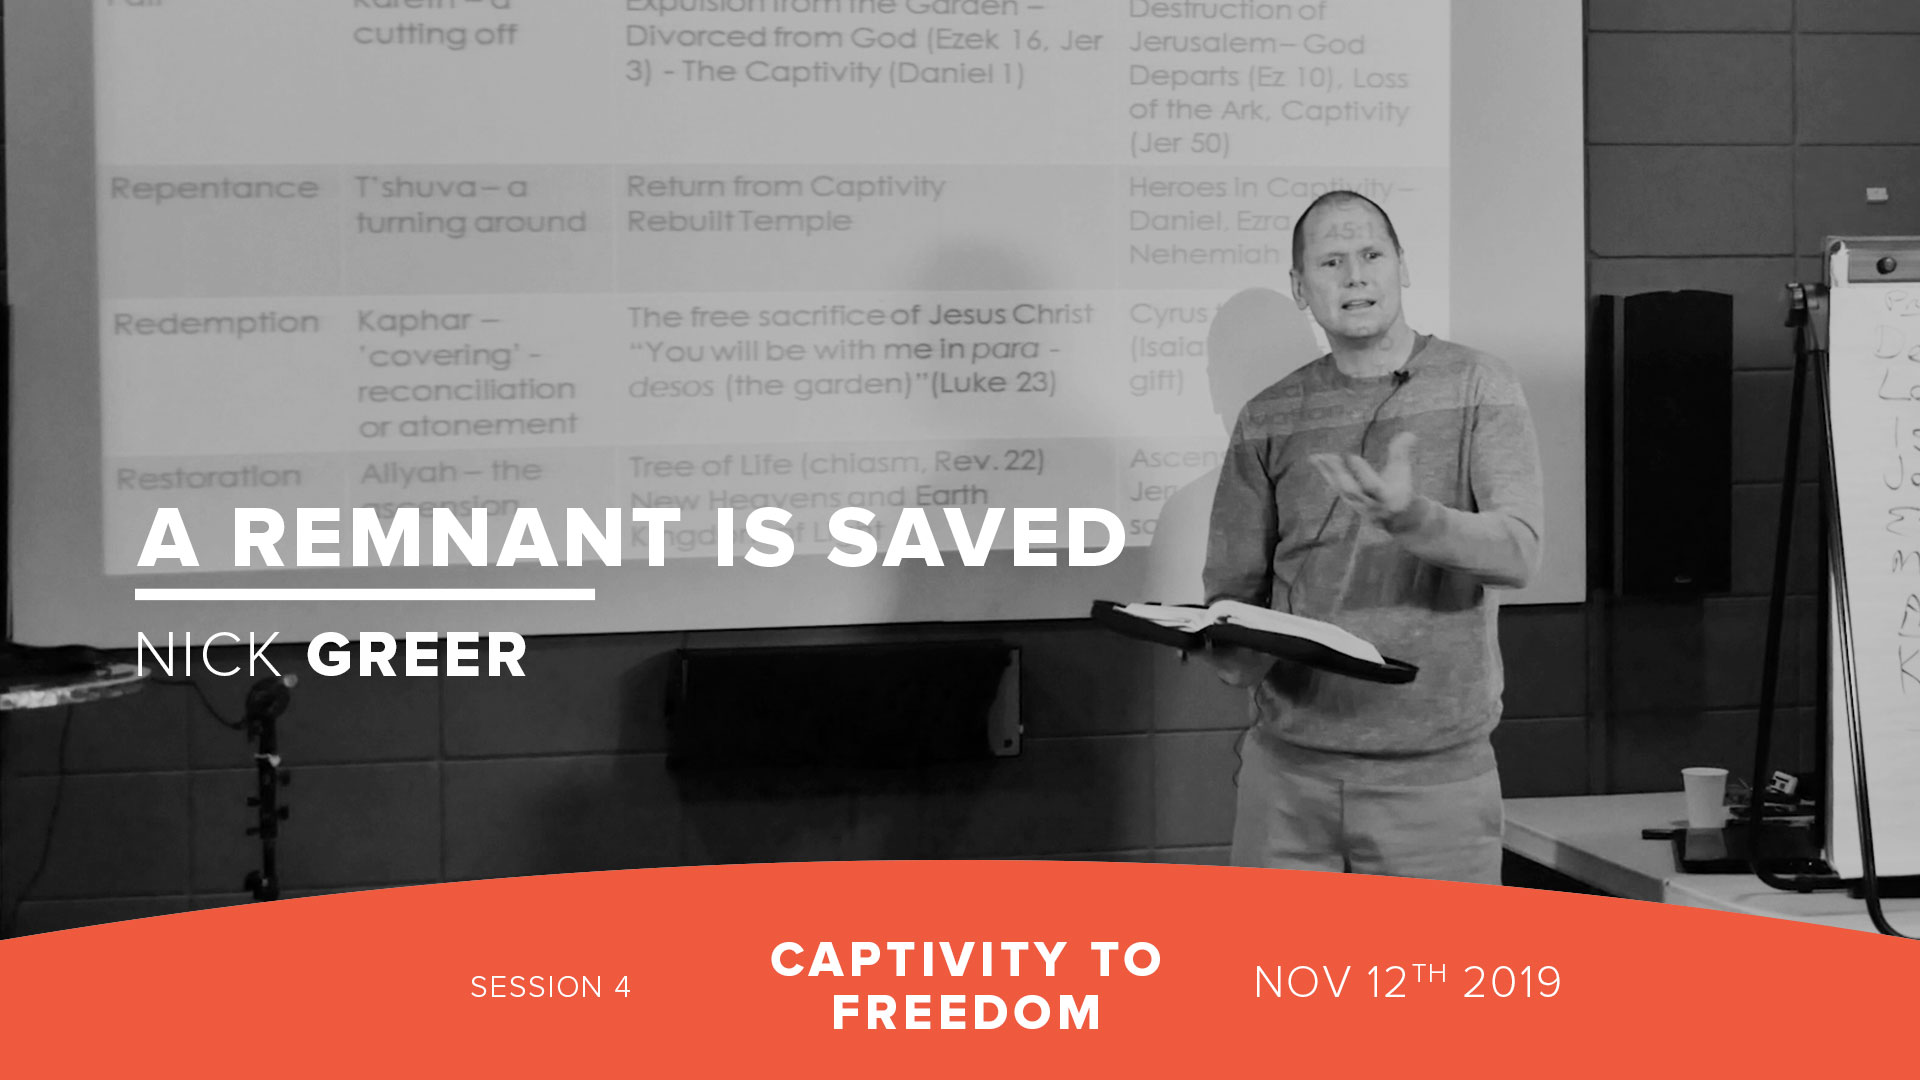 Session 4: A Remnant is Saved